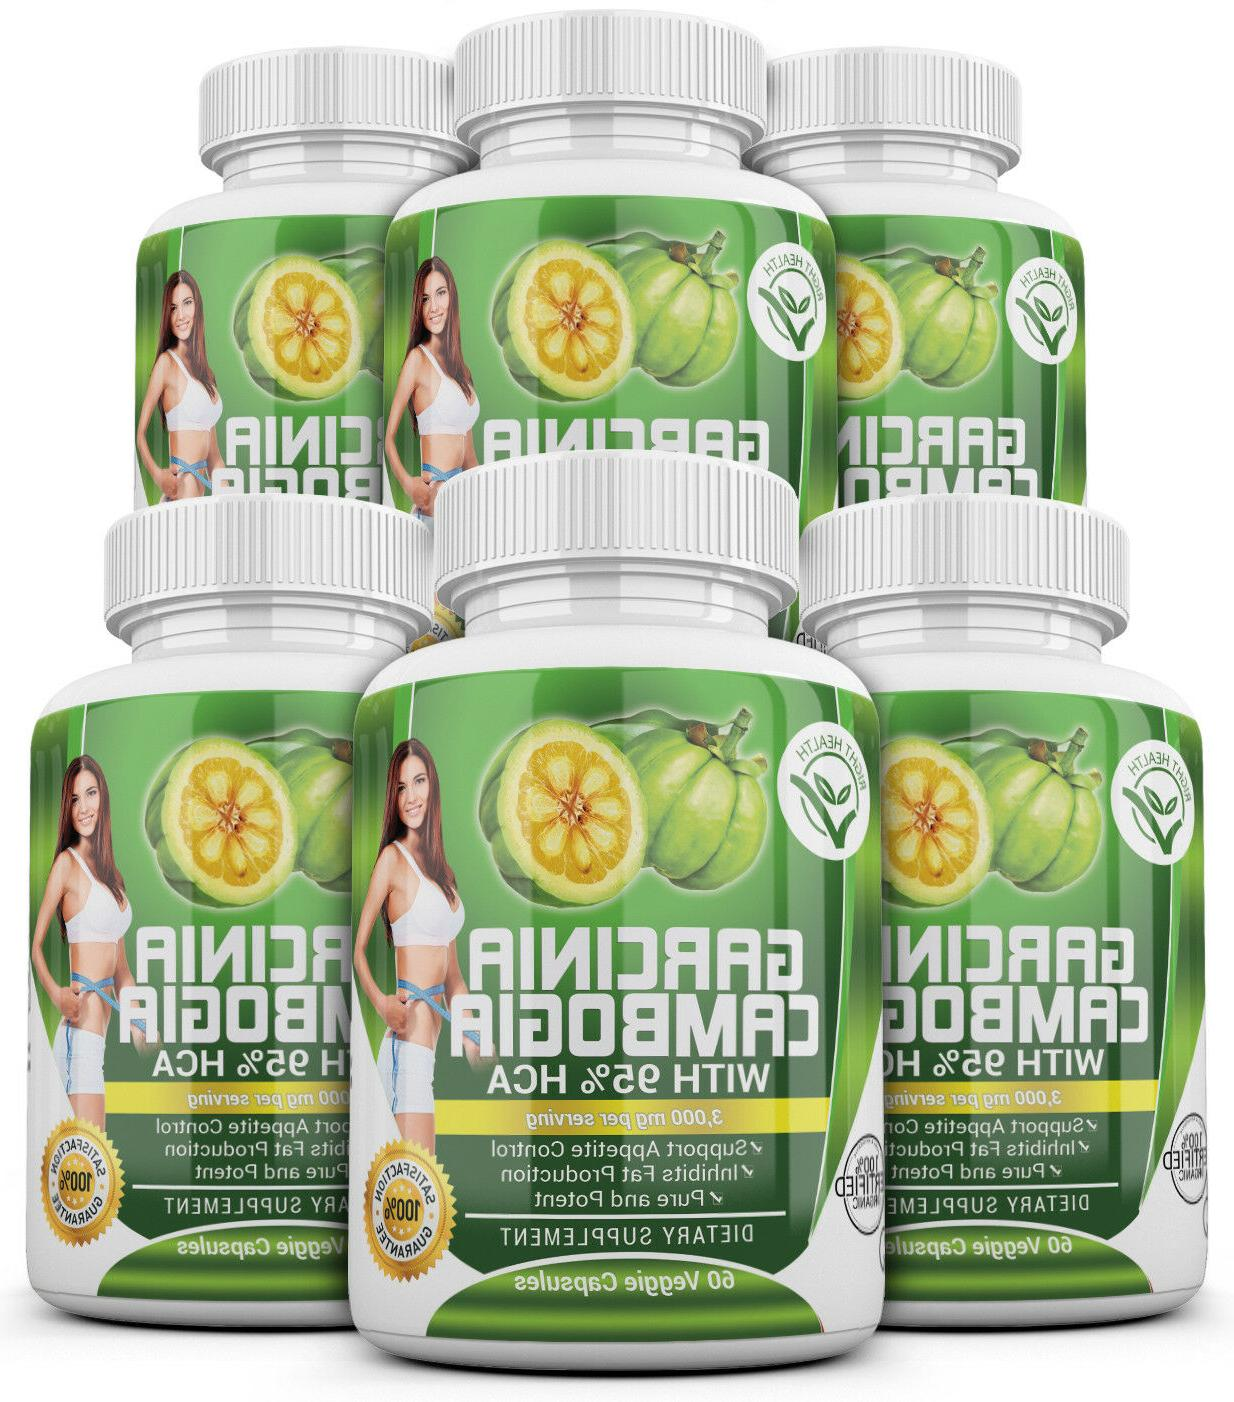 6 x bottles 360 capsules 3000mg daily